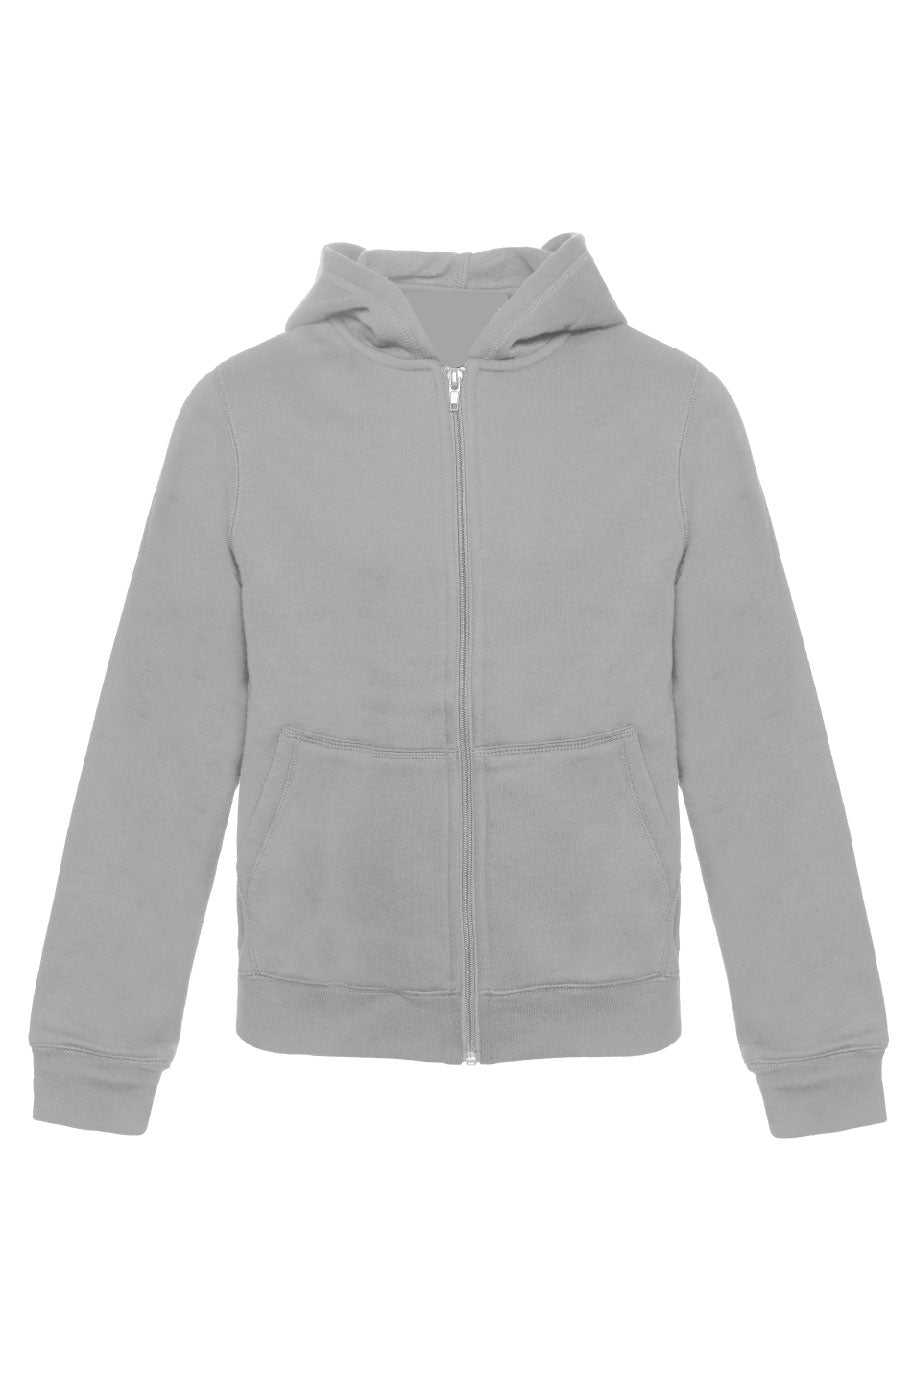 Lee Brand Zipper hooded sweater (Adult)